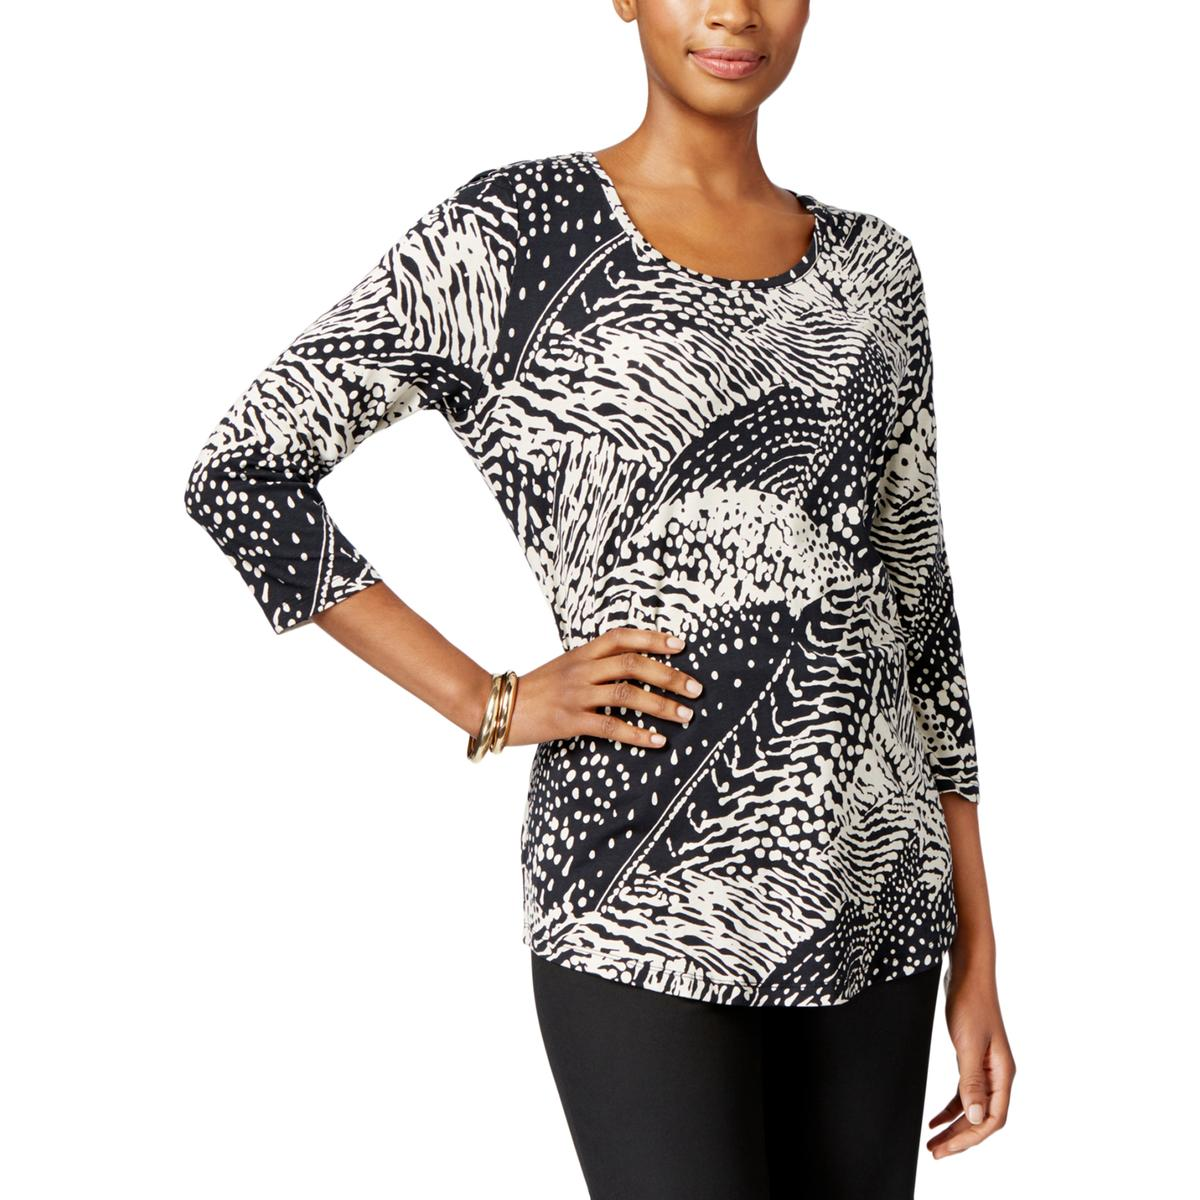 fa8619c0a0e JM COLLECTION Petites Womens Printed Round Neck Pullover Top